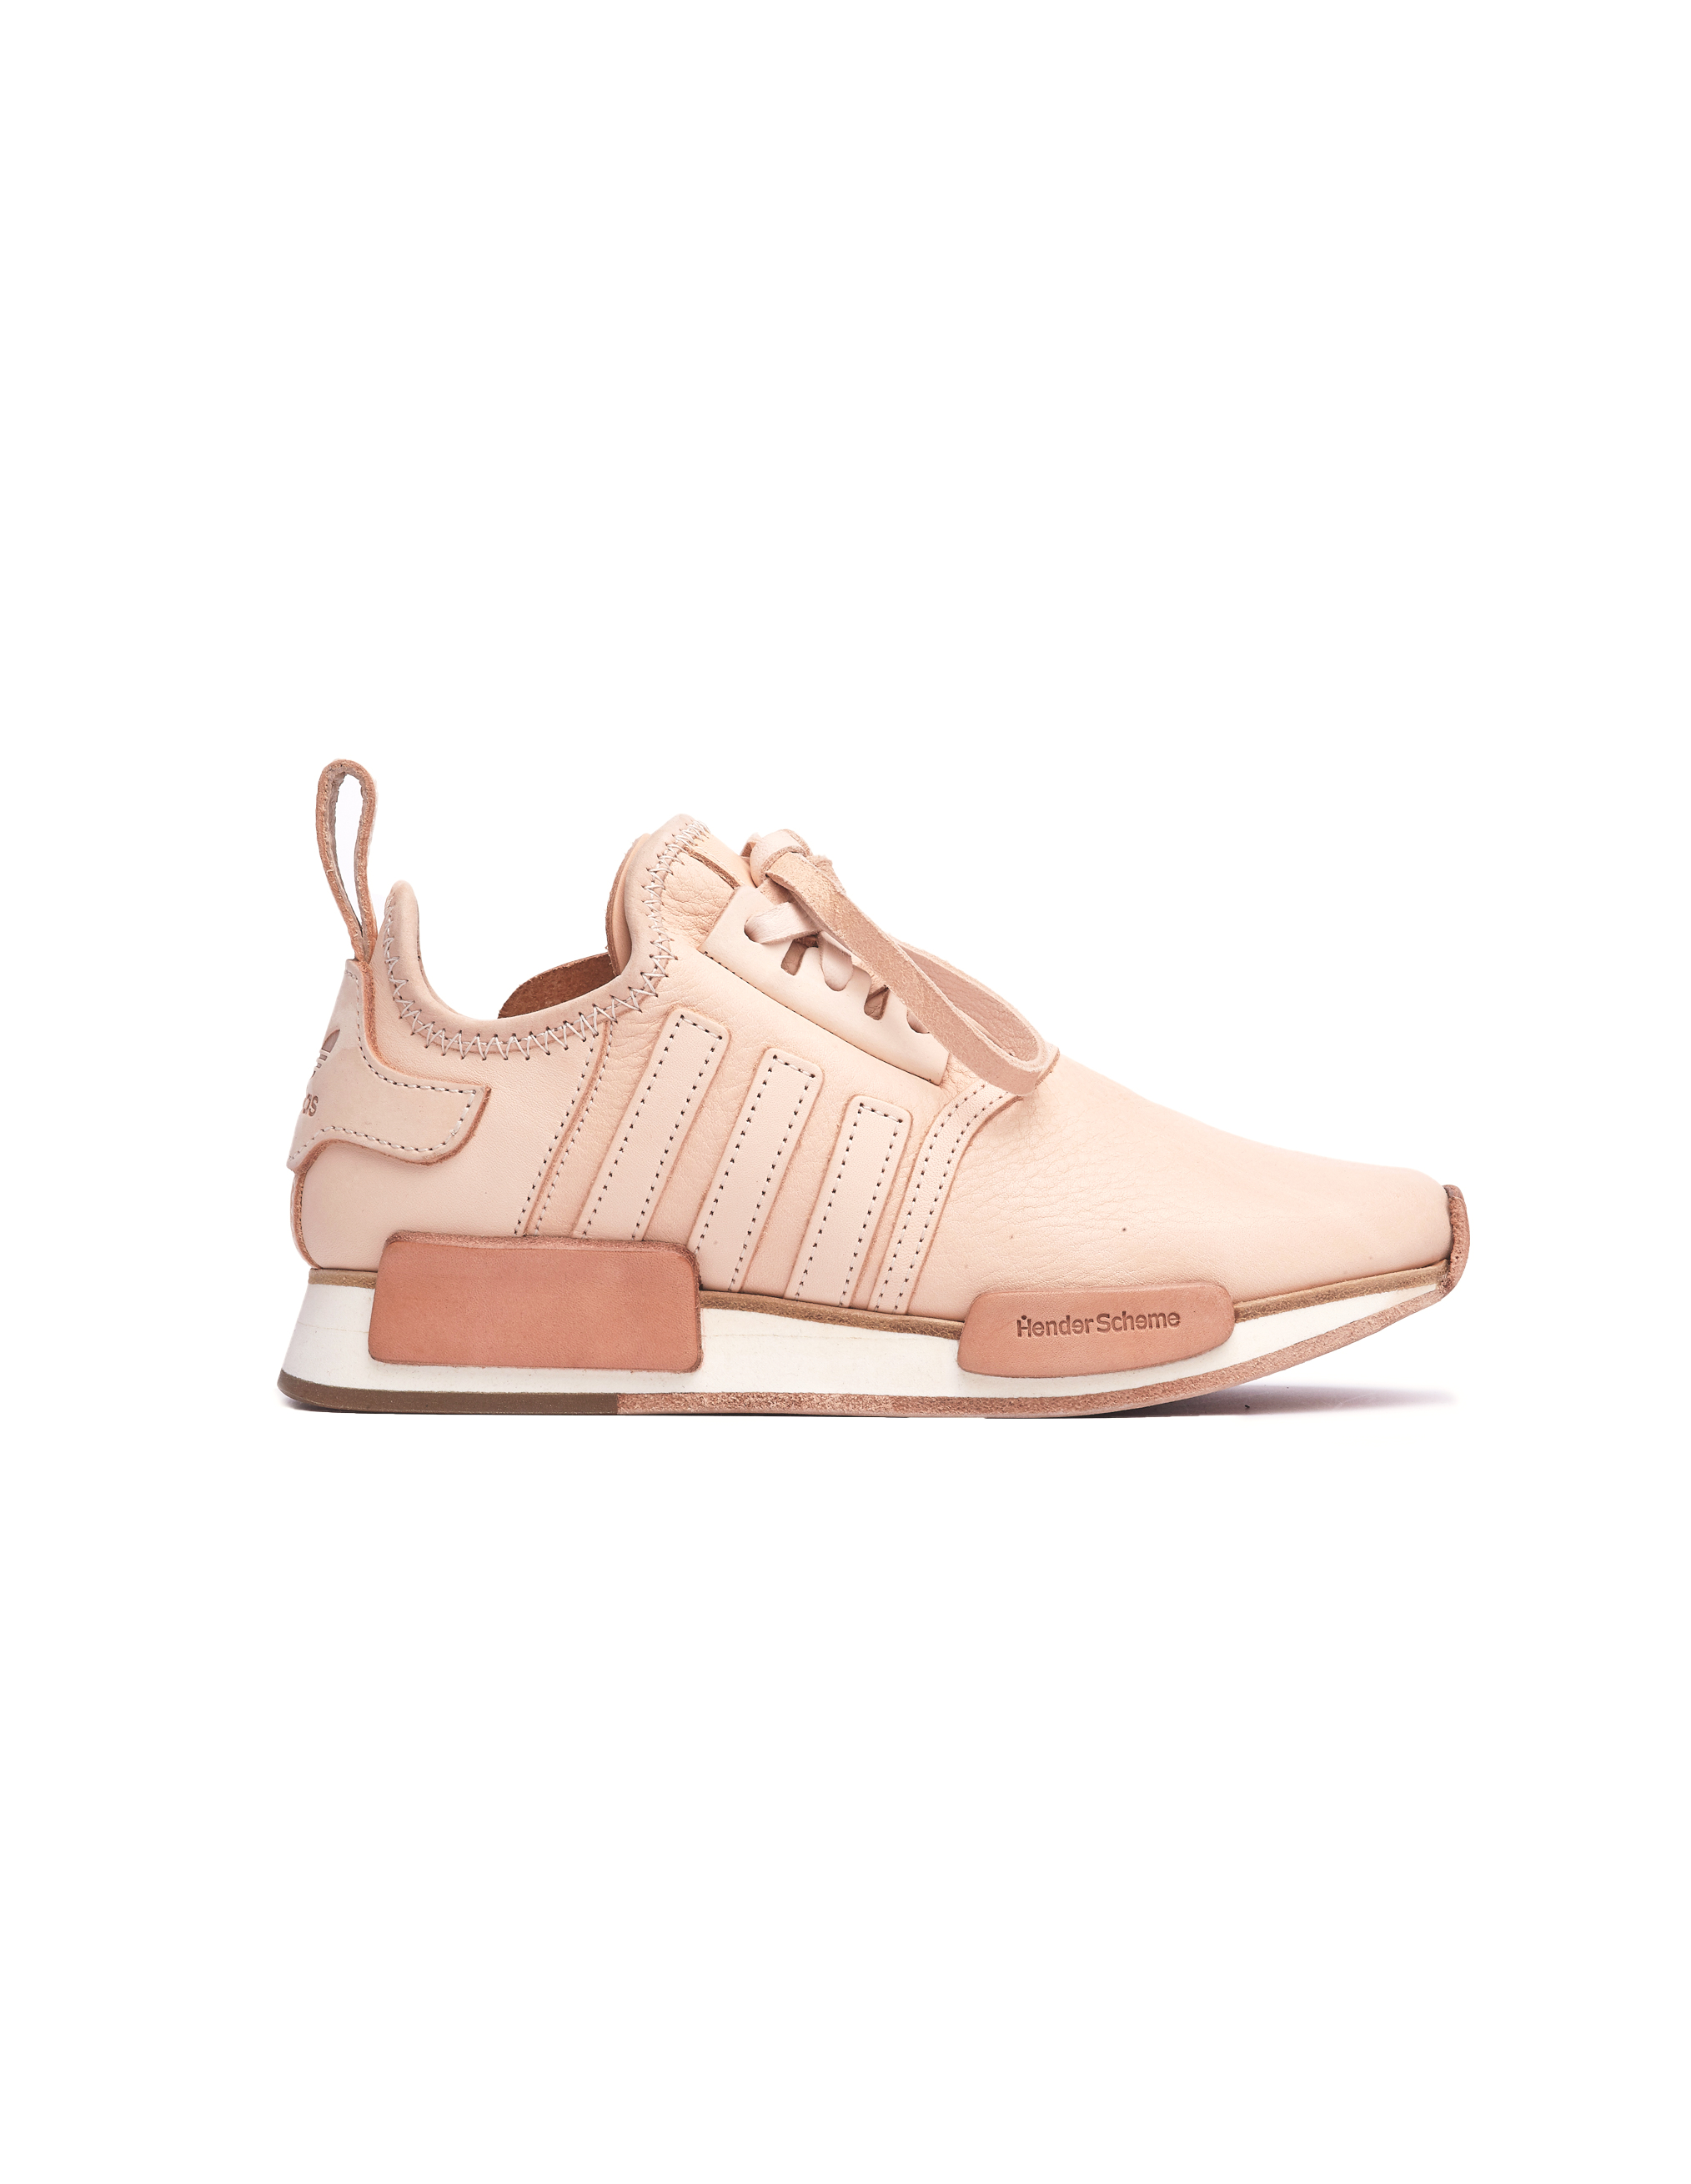 Adidas NMD R1 Leather Sneakers - Beige